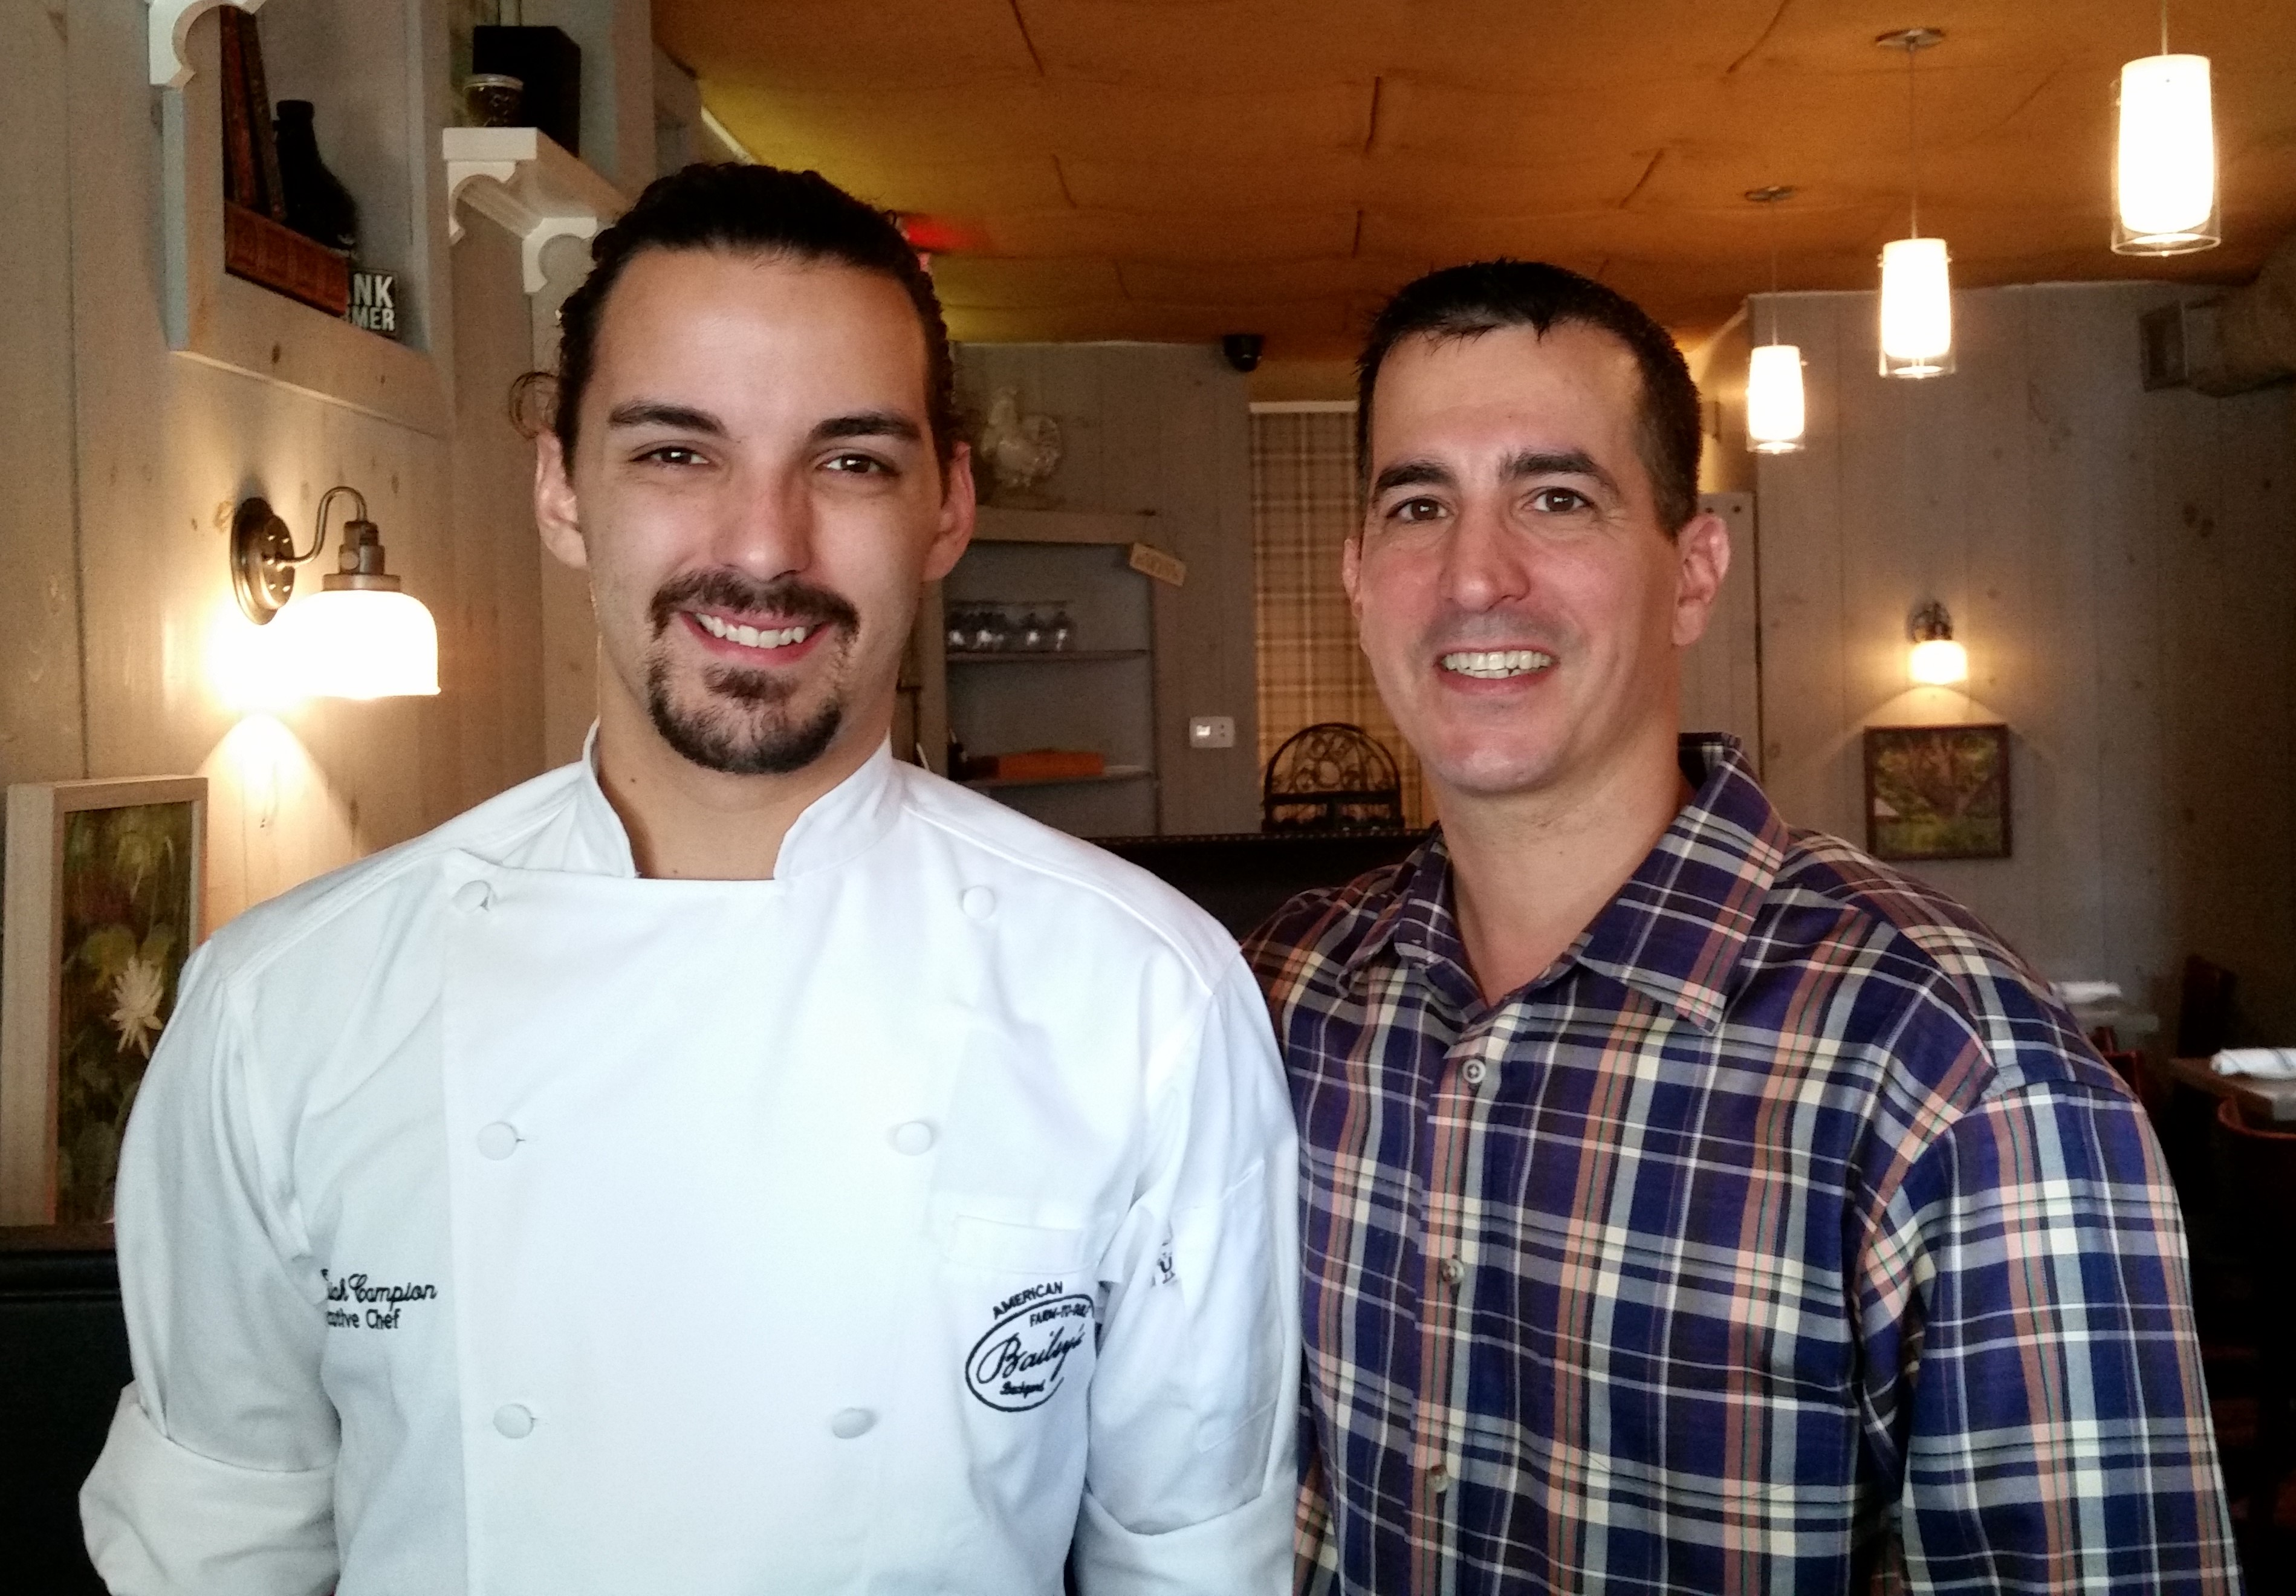 Amazing Baileyu0027s Backyard Turns 18 Next Month, And Its Owner, Sal Bagliavio, Is  Celebrating The Popular Ridgefield Restaurantu0027s Anniversary By Reaffirming  His ...